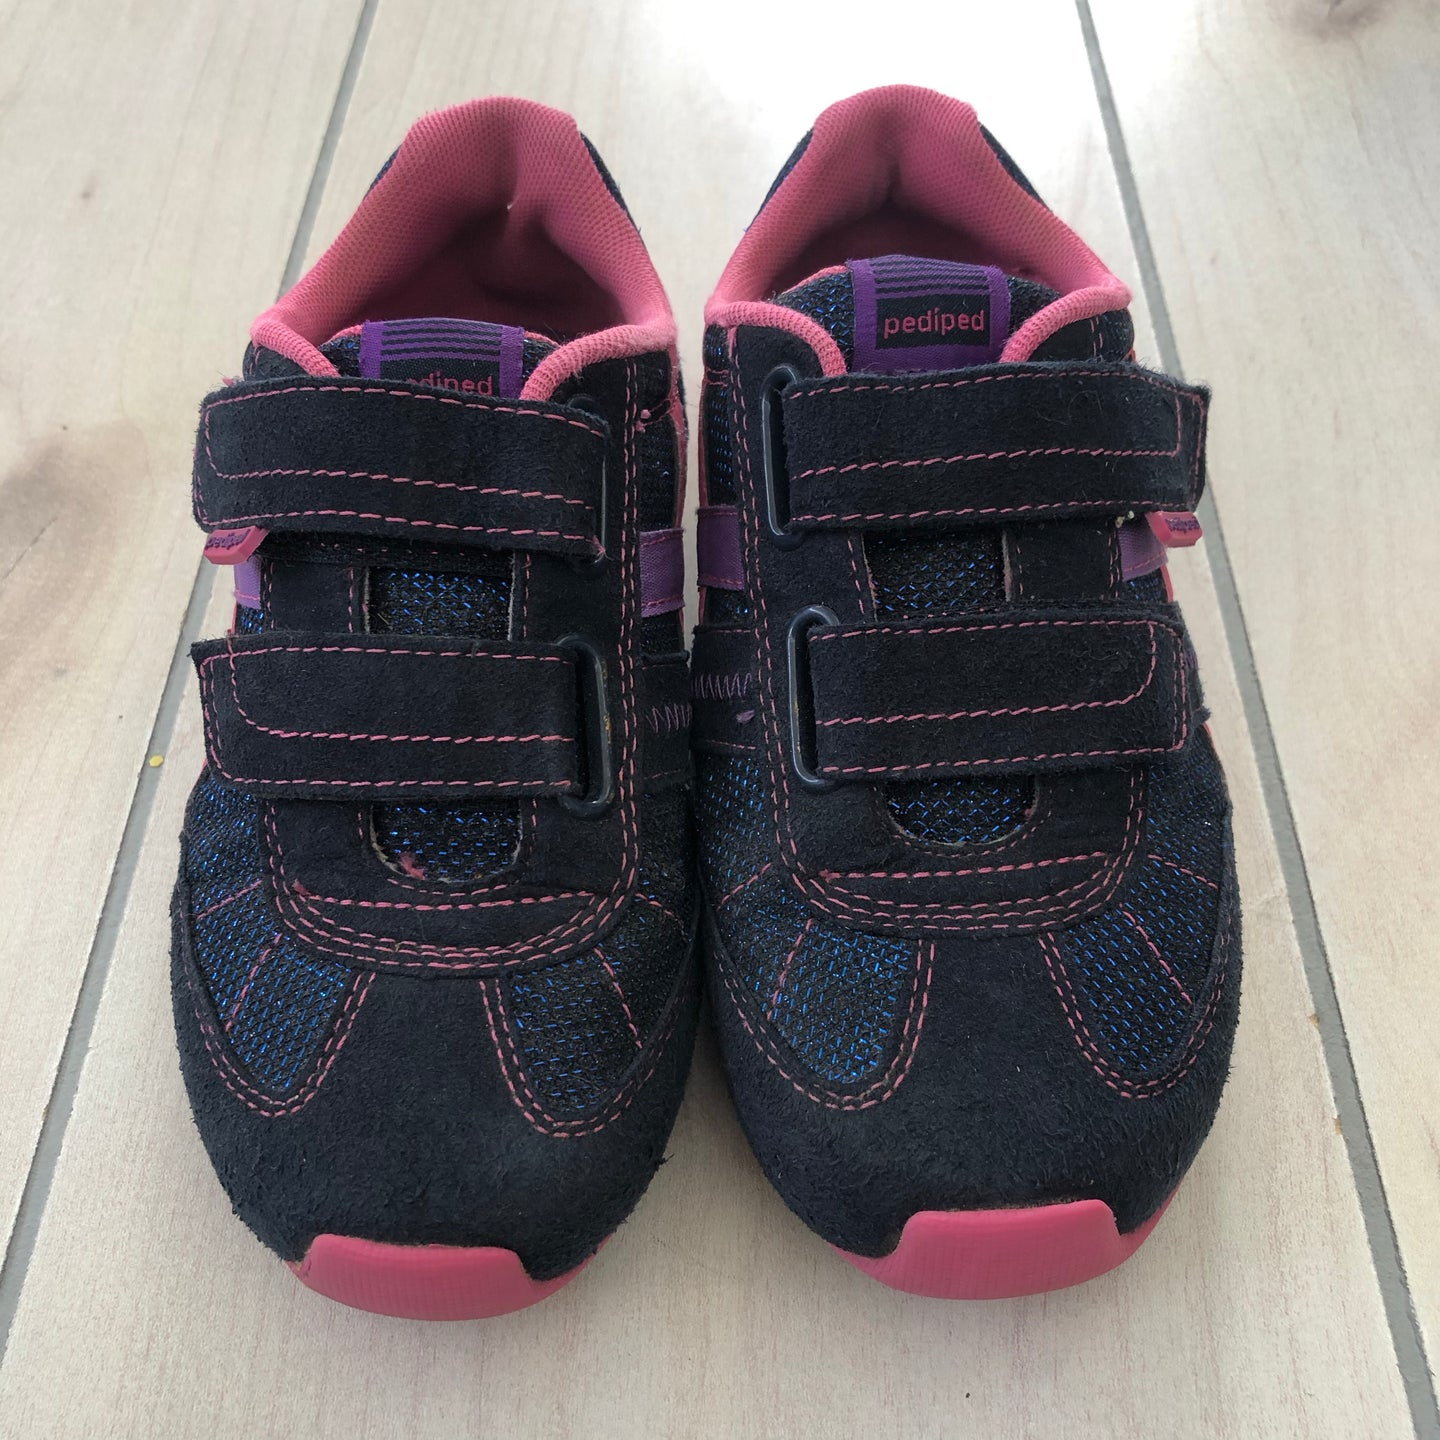 Pediped Gehrig Flex Sneaker Size 12.5-13